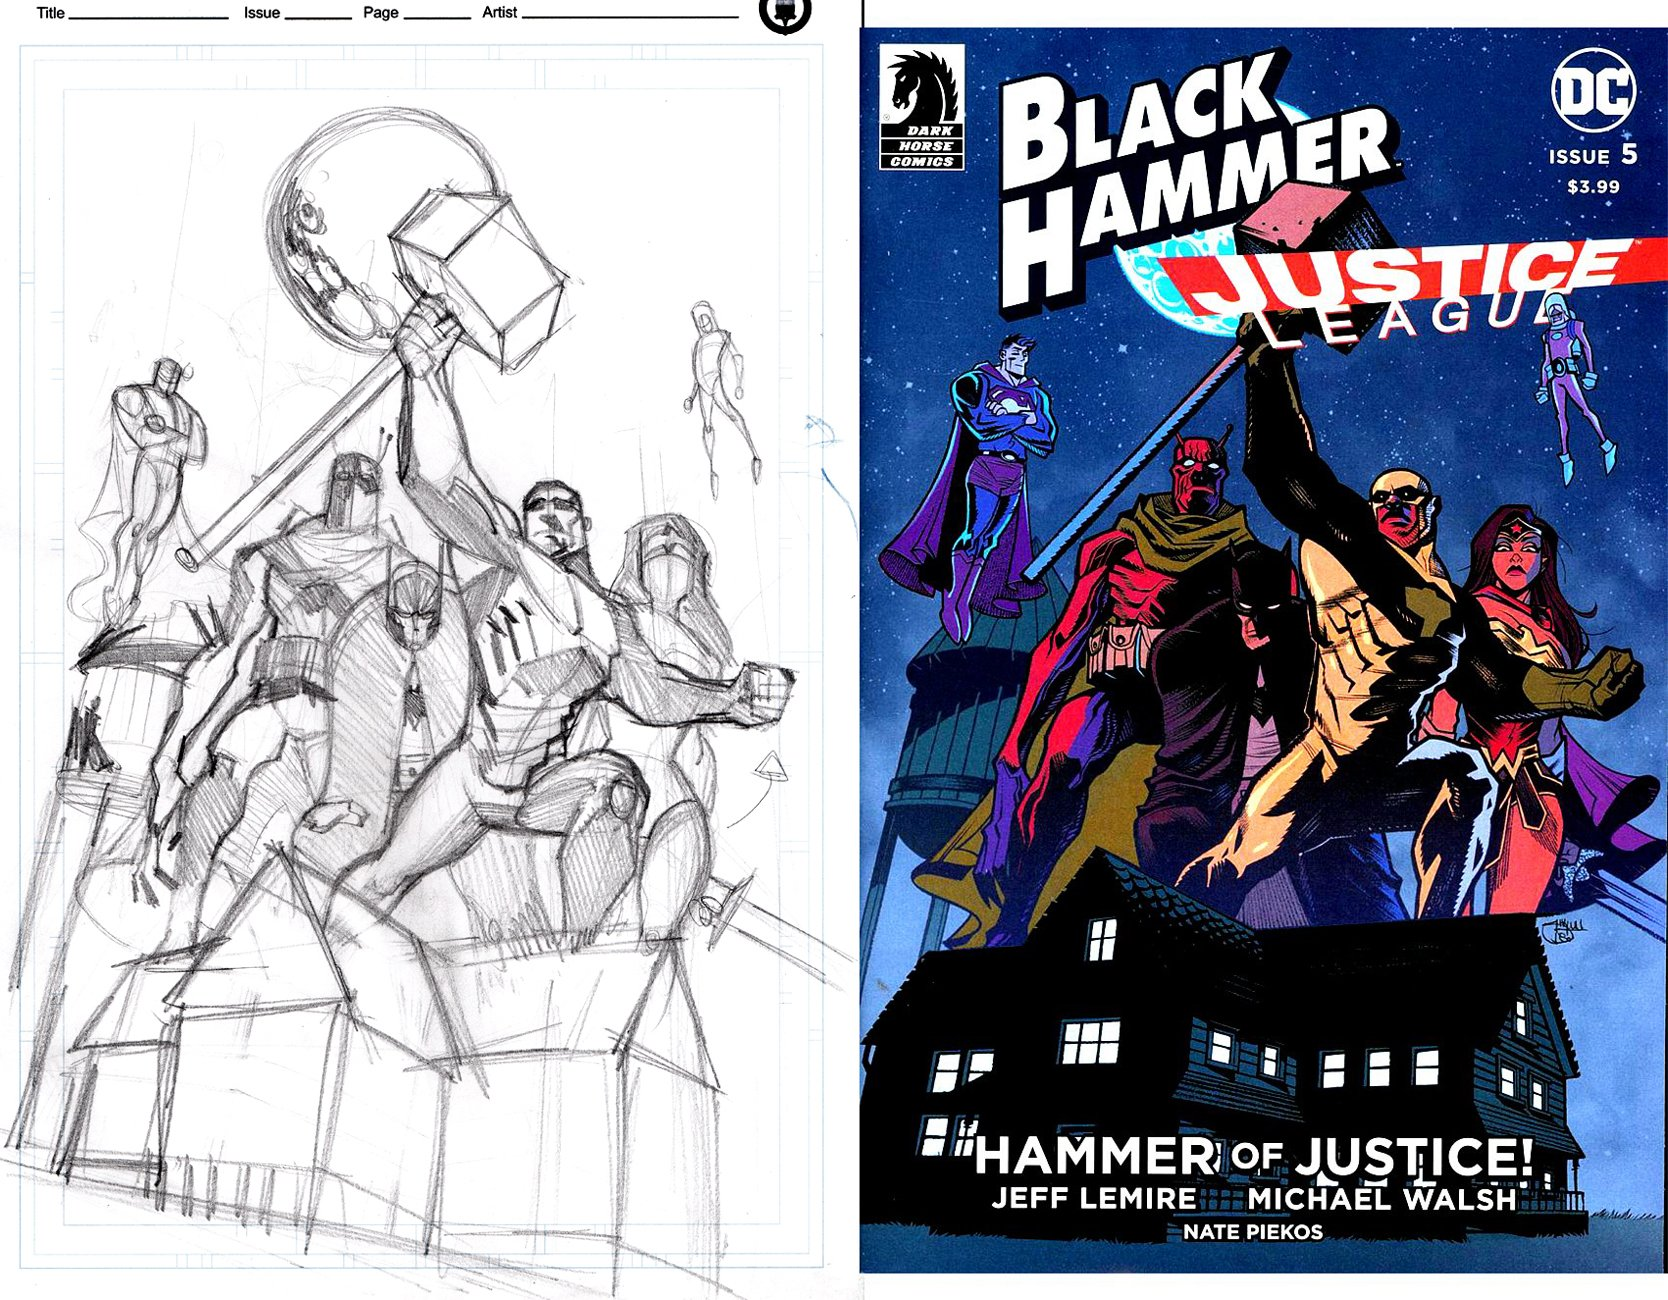 Black Hammer / Justice League #5 Full Size Cover Prelim & 3 ink Thumbnail Cover Drawings